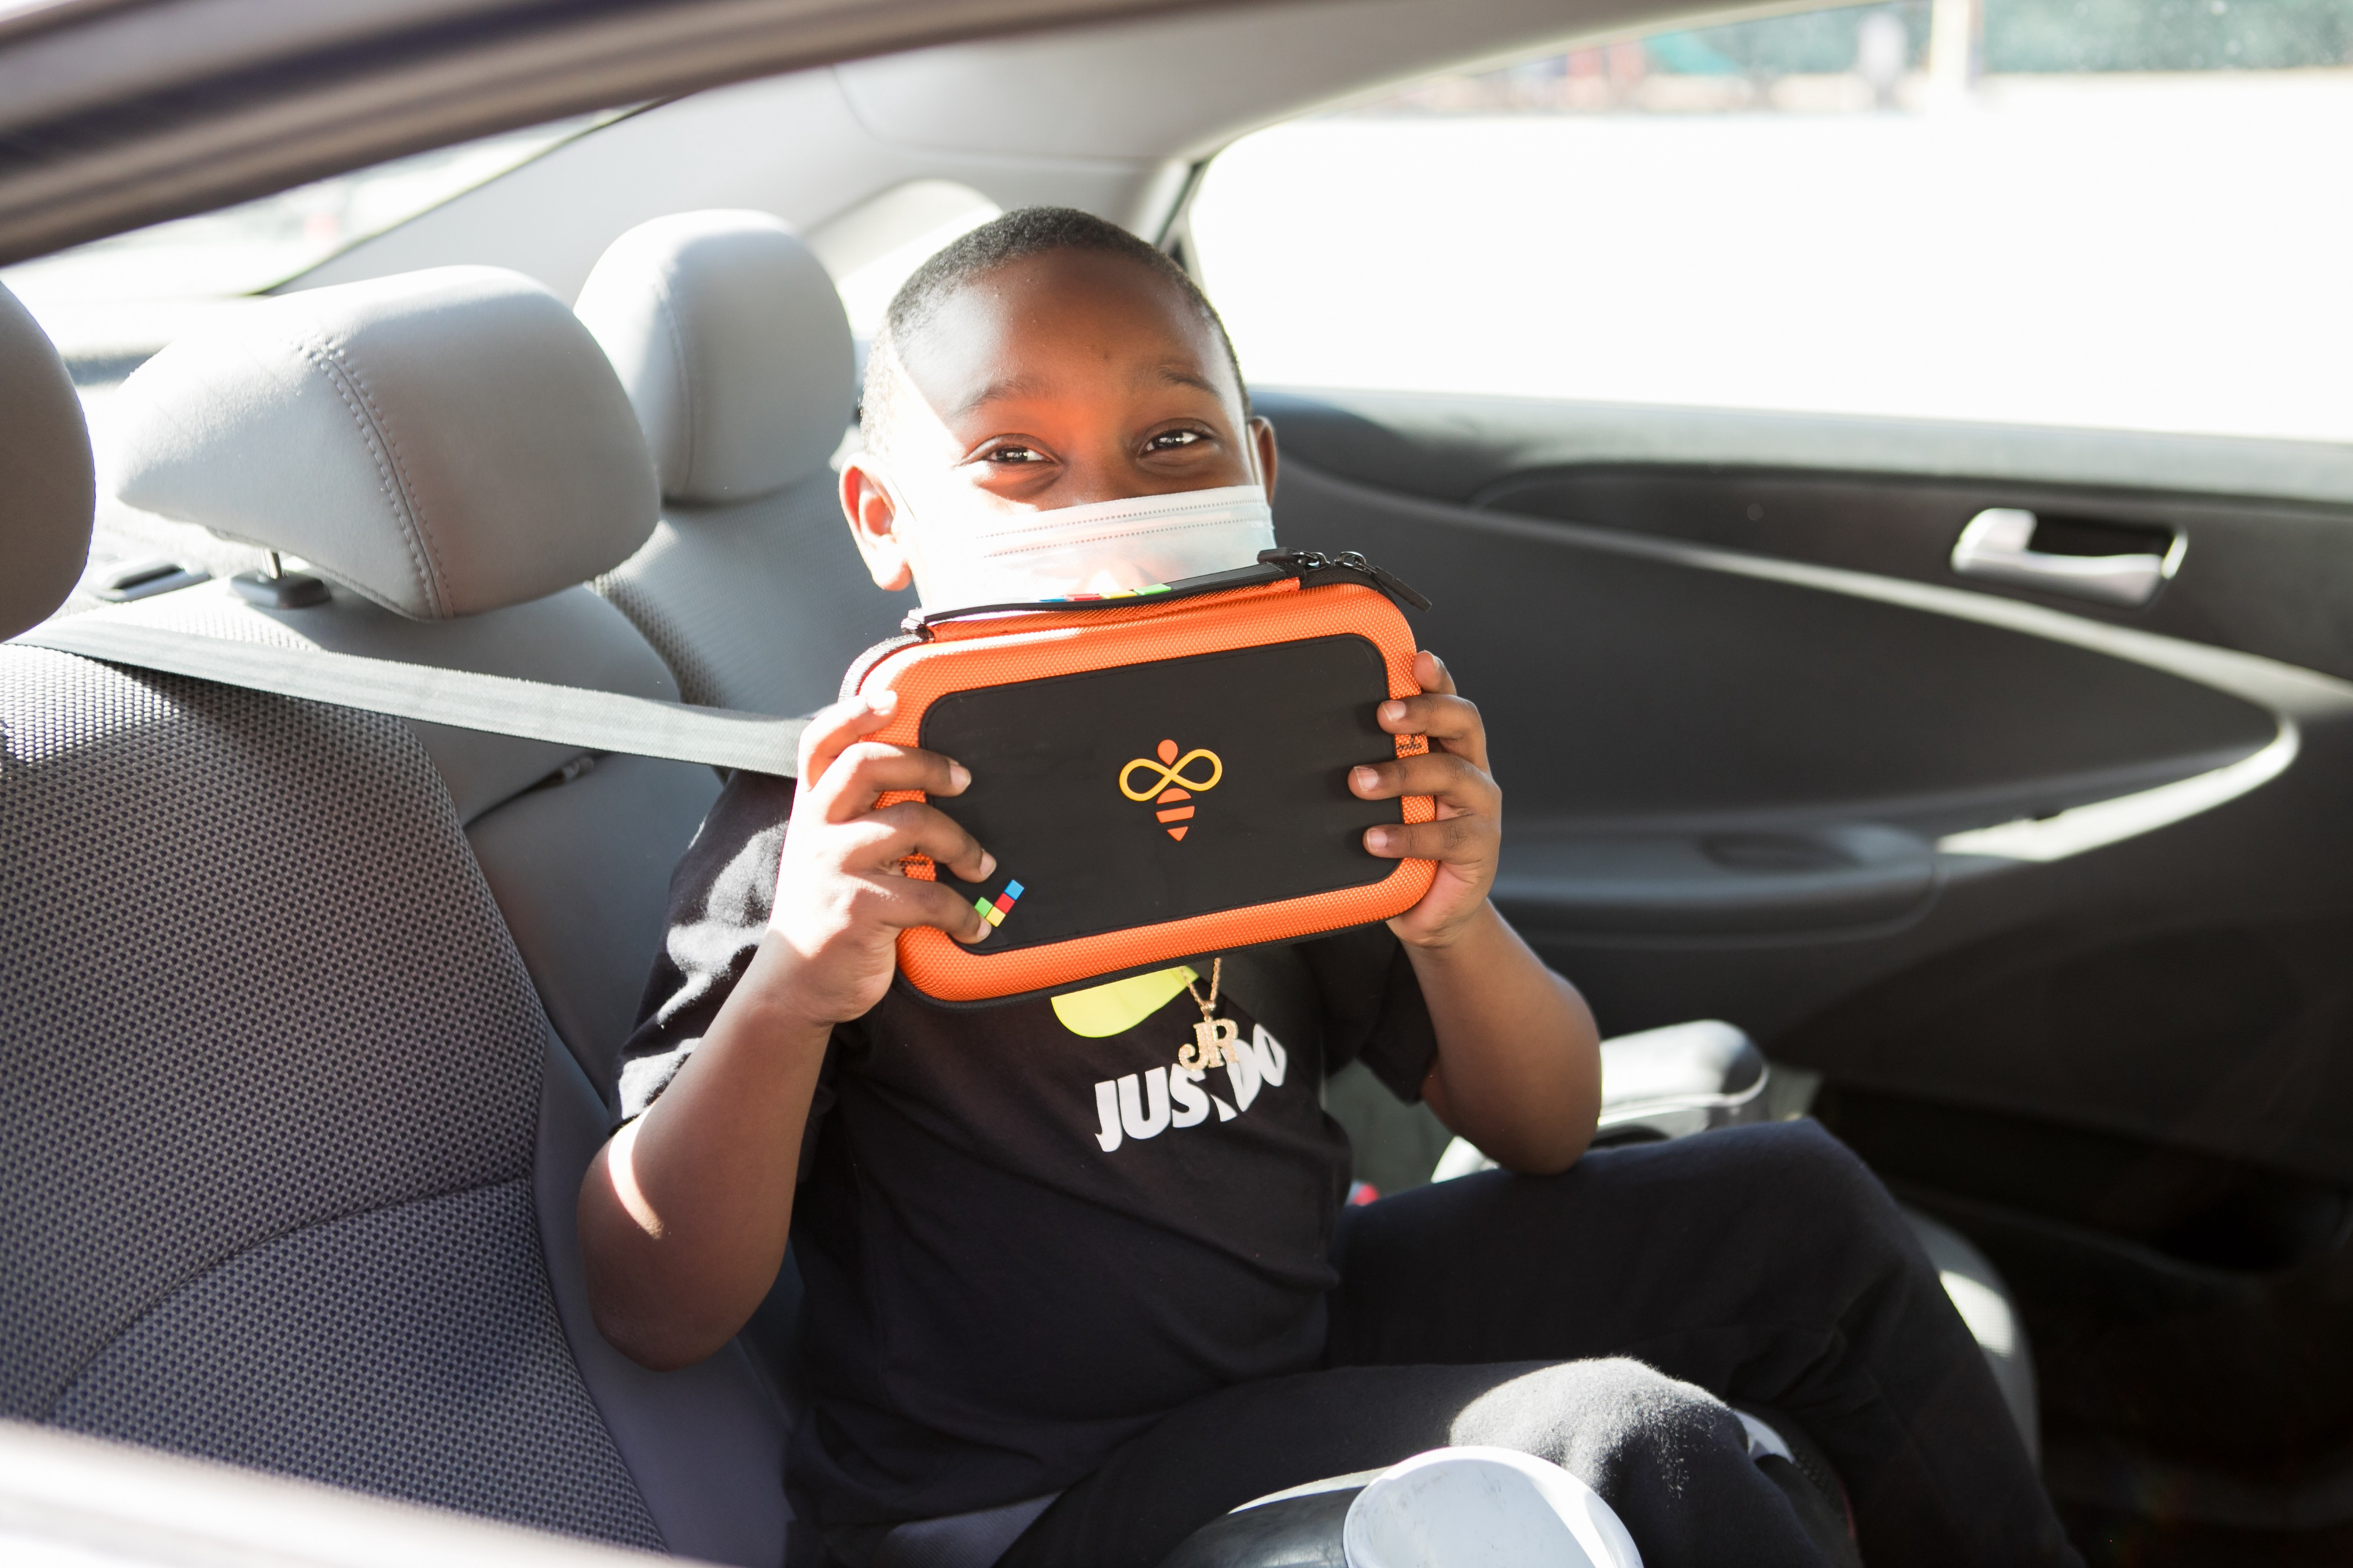 An Aspire student proudly shows their newly received onetab device.